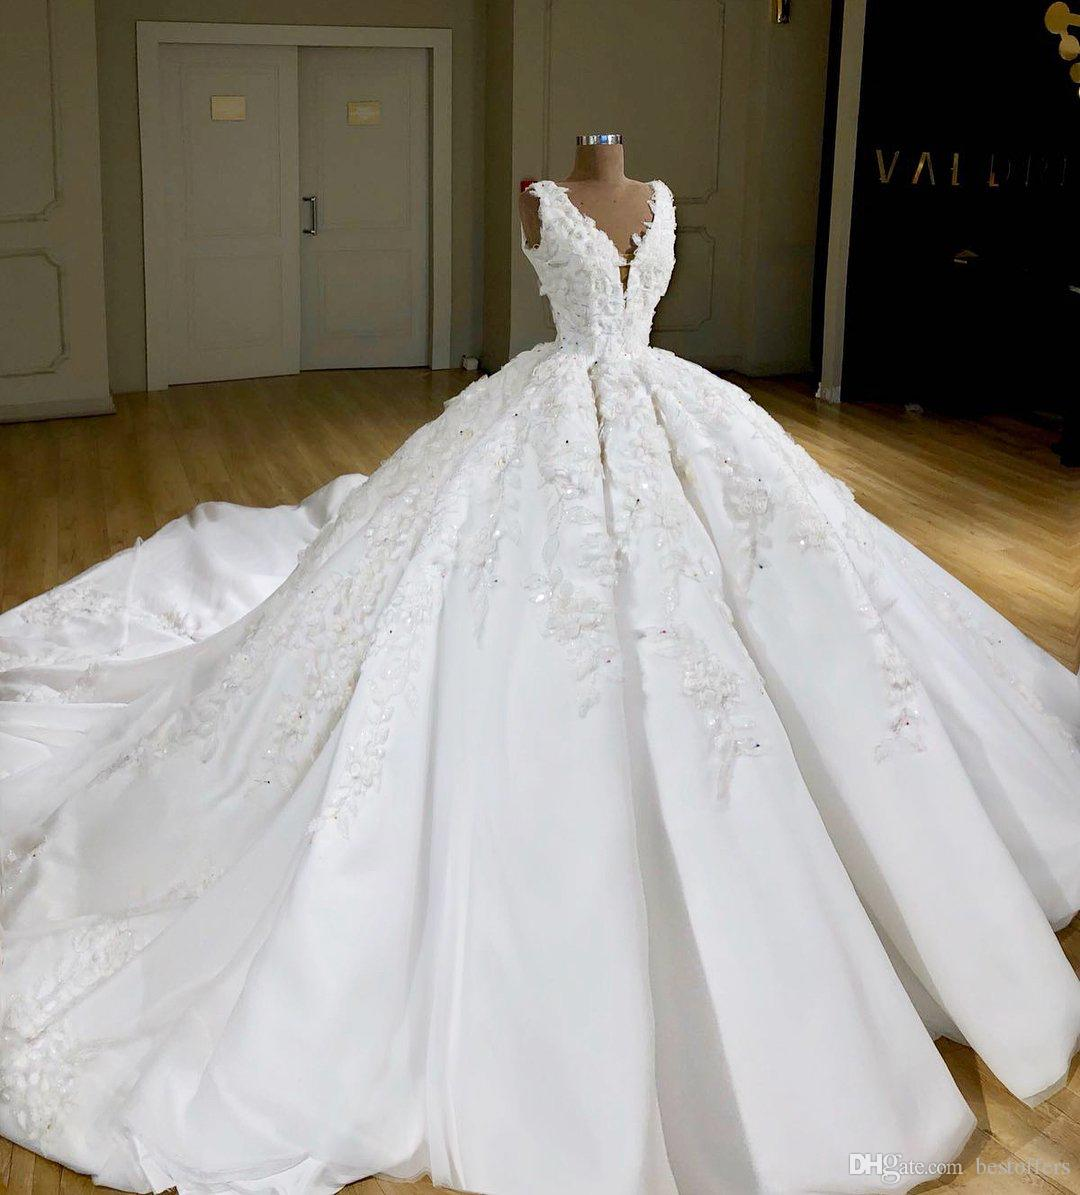 new super ball gown real images wedding dresses v neck sleeveless satin  applique lace custom made bridal gowns dresses wedding formal wedding  dresses